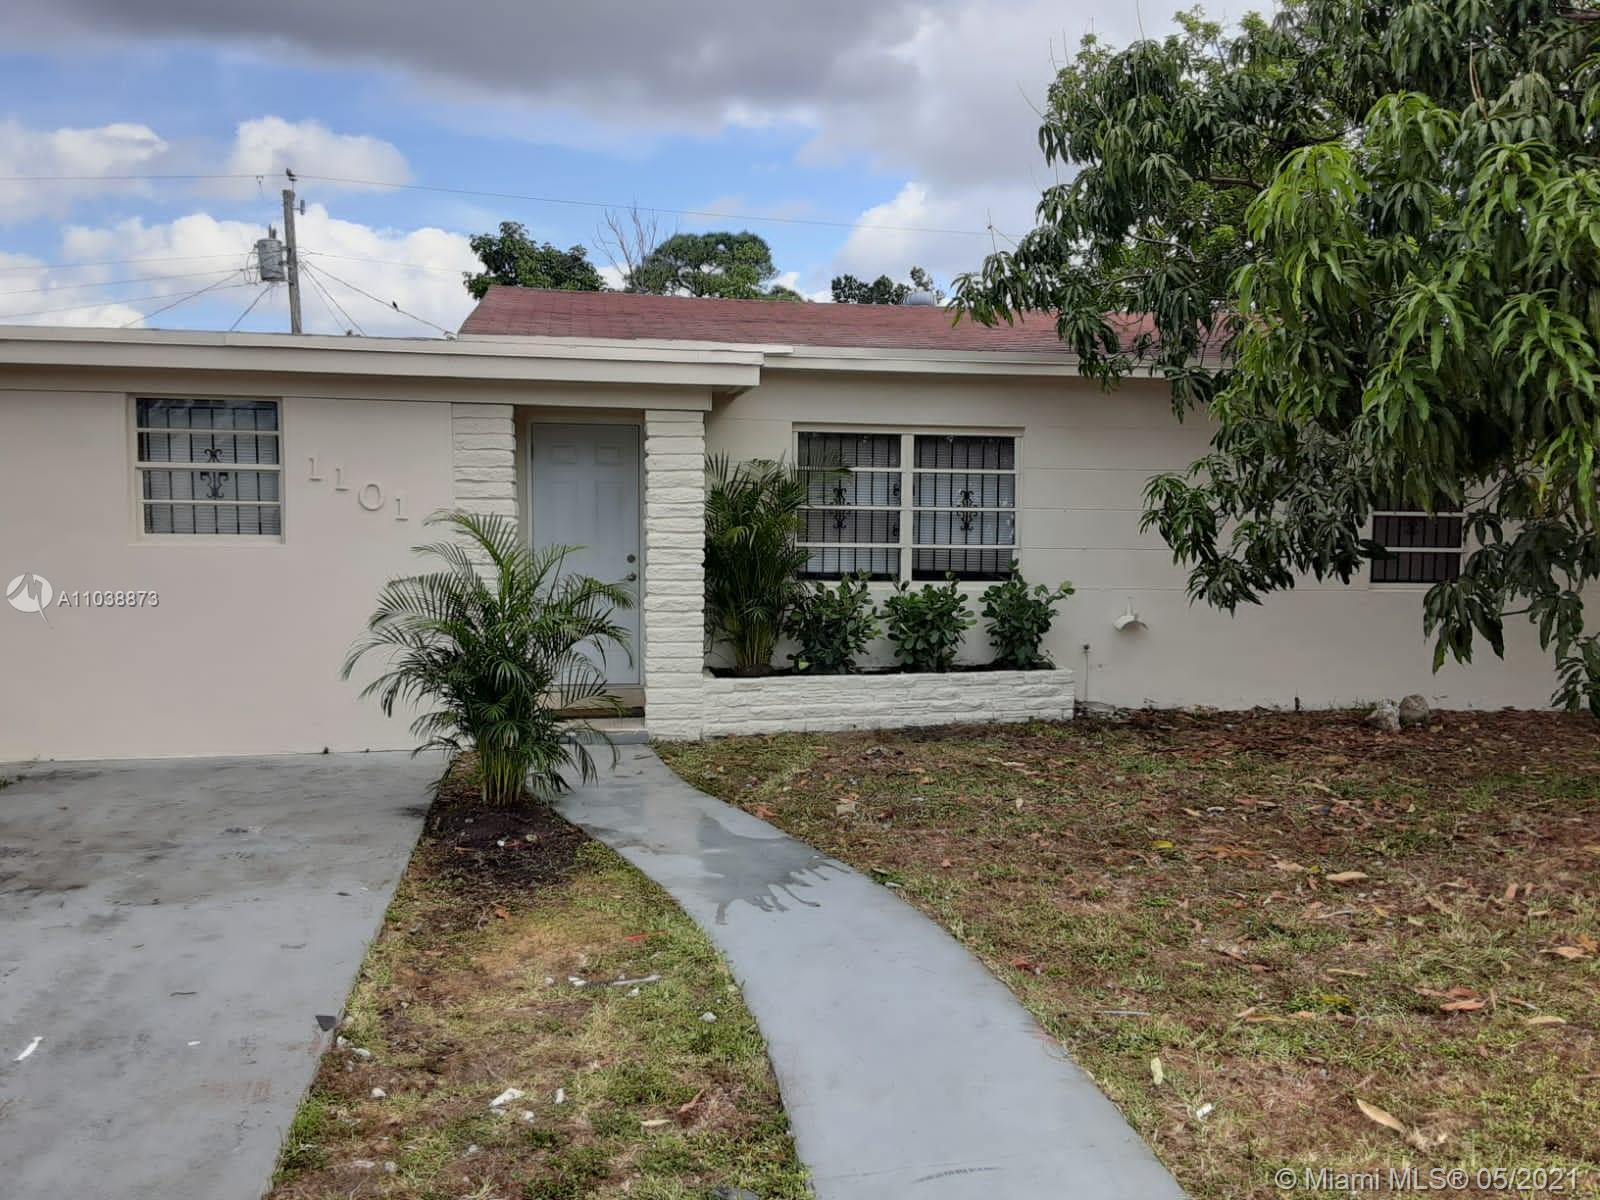 Bisc Gardens - 1101 NW 145th Ter, Miami, FL 33168